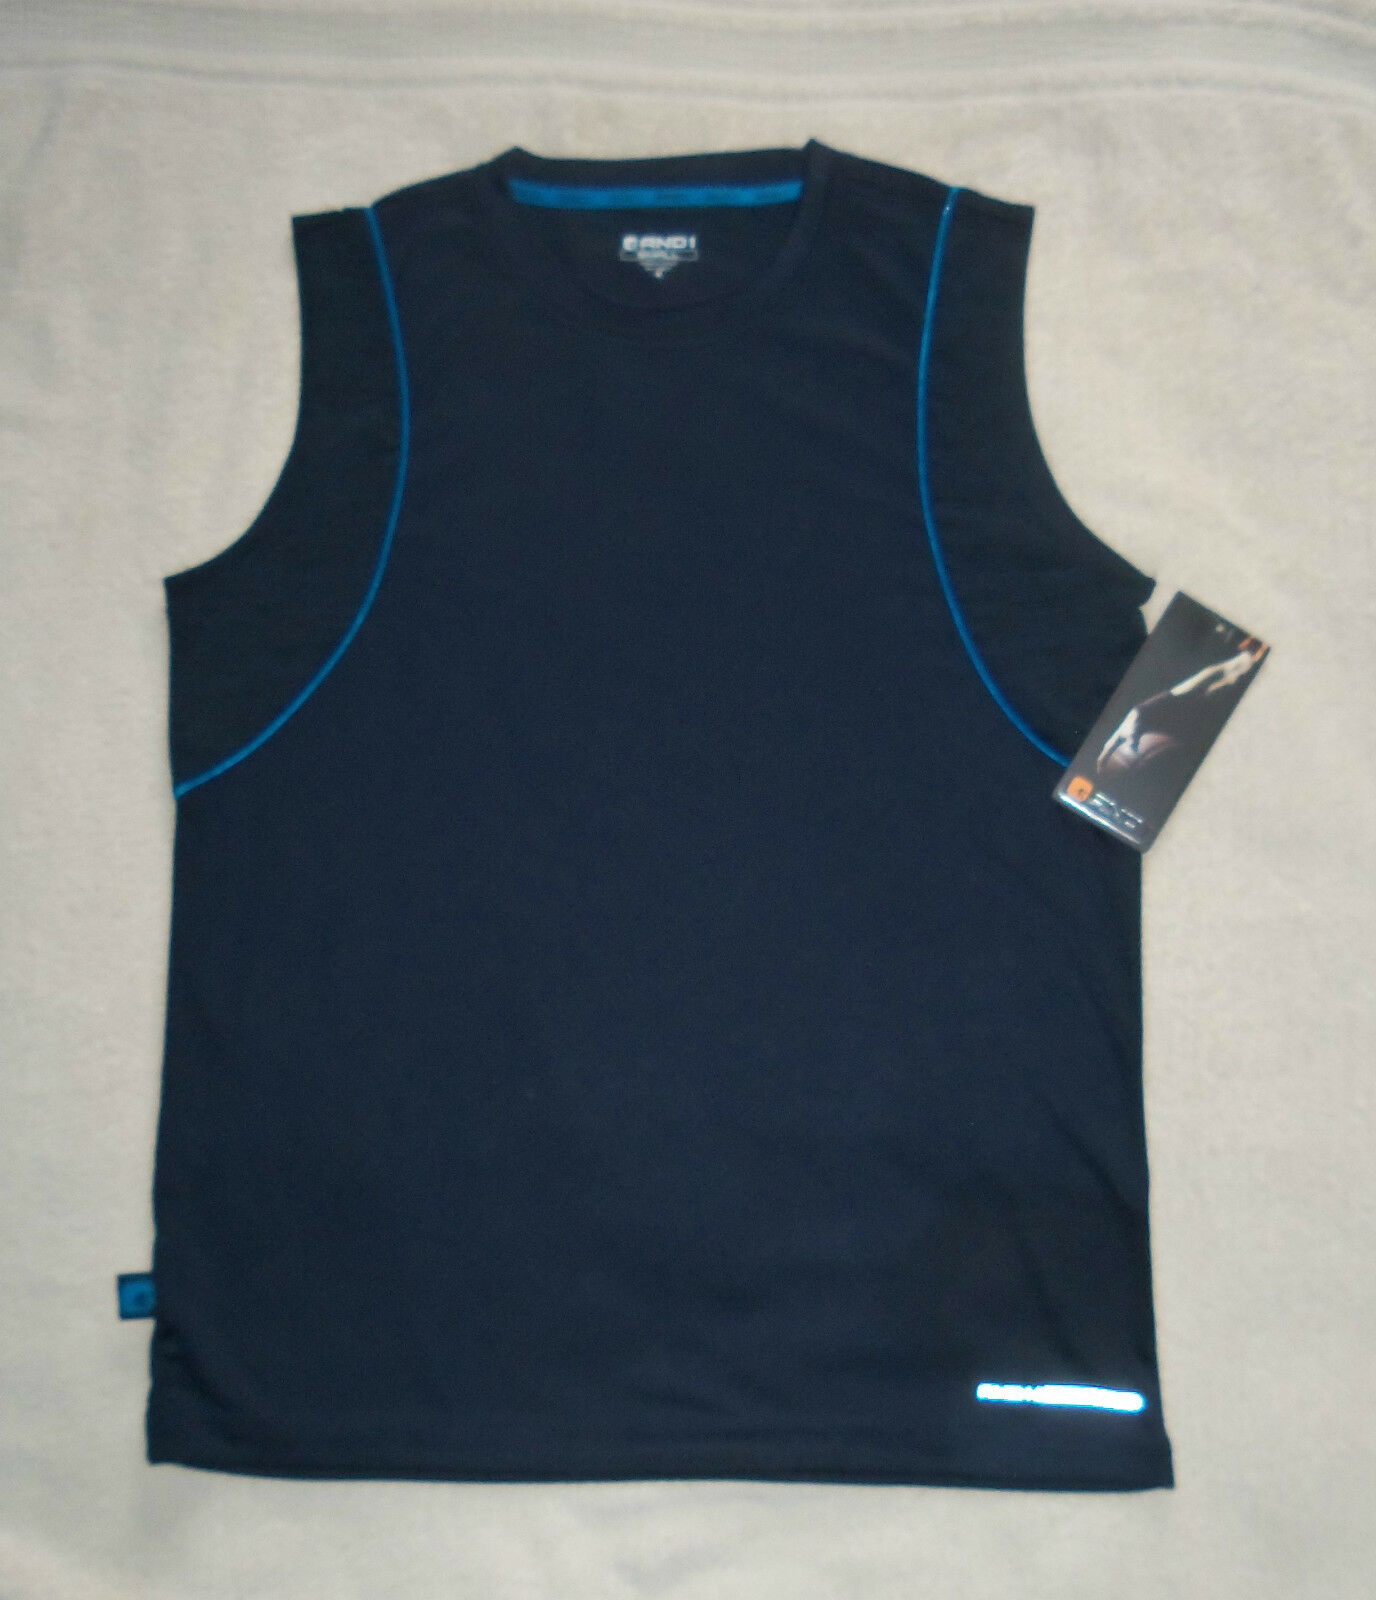 AND1 Navy Blue Performance Basketball Vest - New with Tags - Small